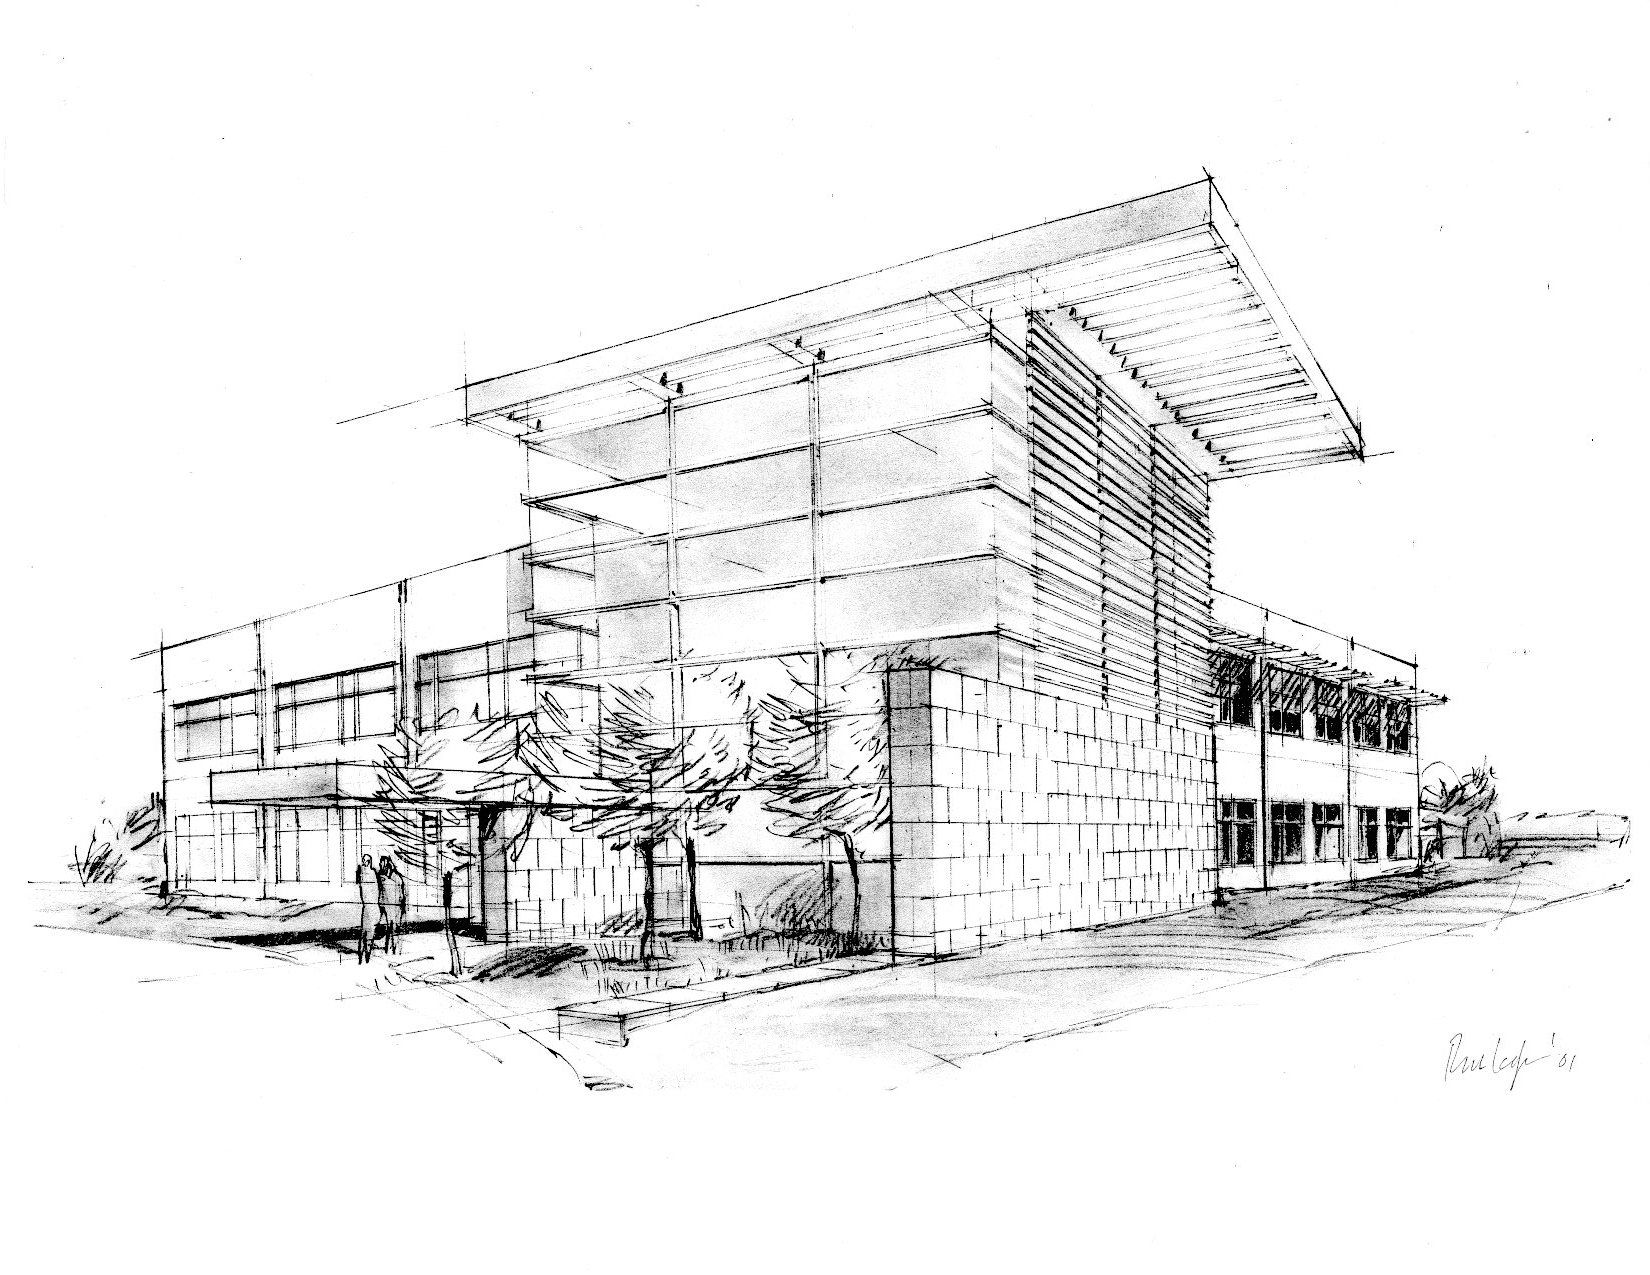 Beautiful Building Design Sketches With Pencil Sketch Of Architectural Concept For The Entry Area An